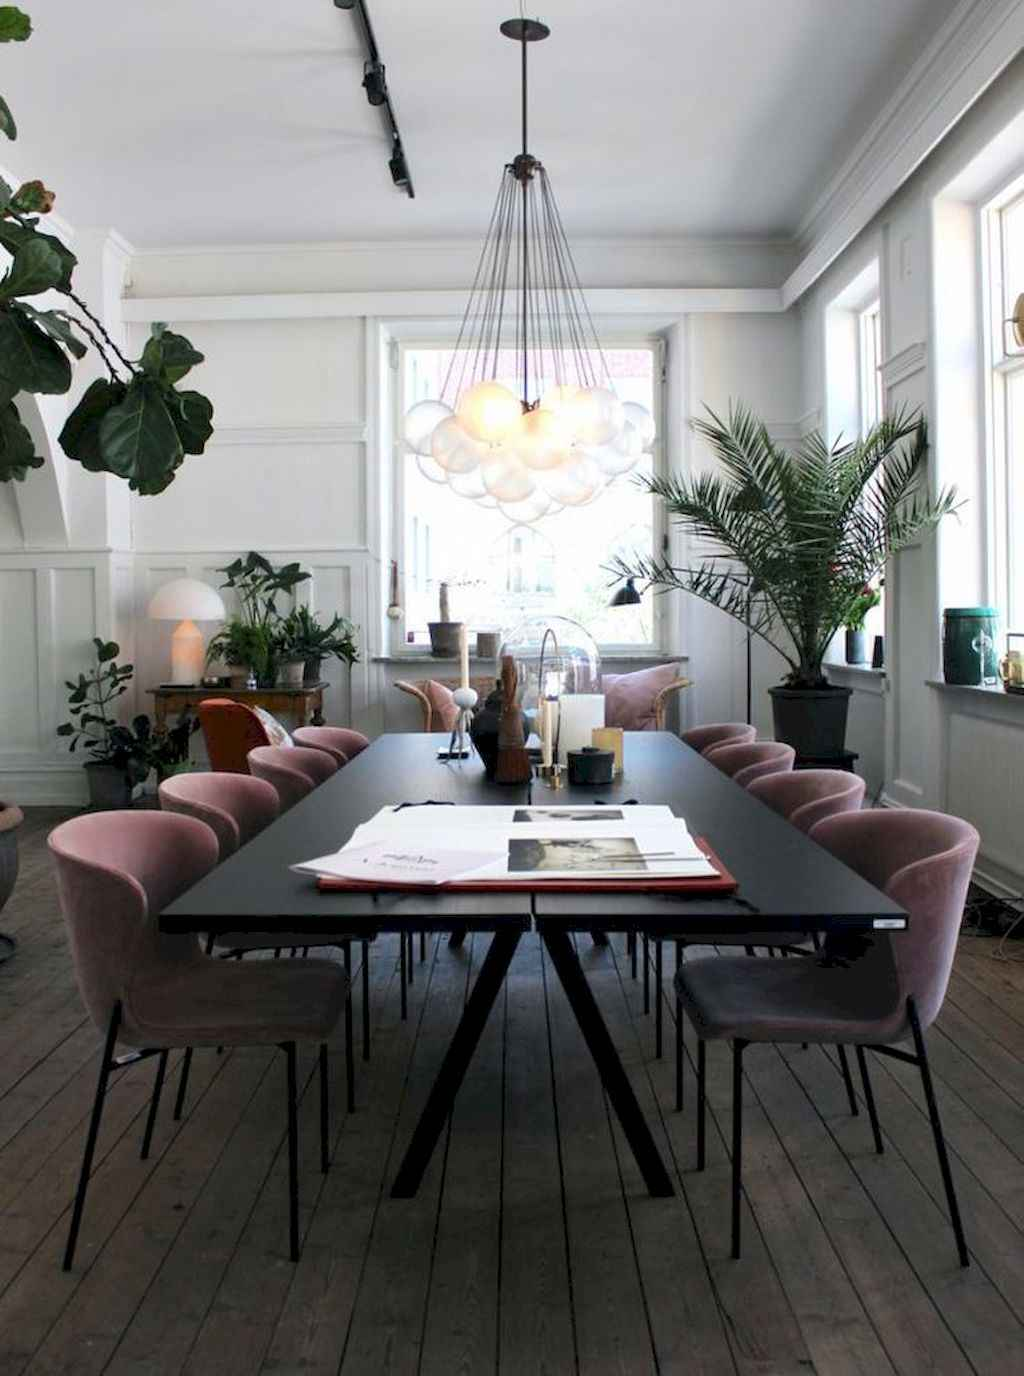 Couples first apartment decorating ideas (104)